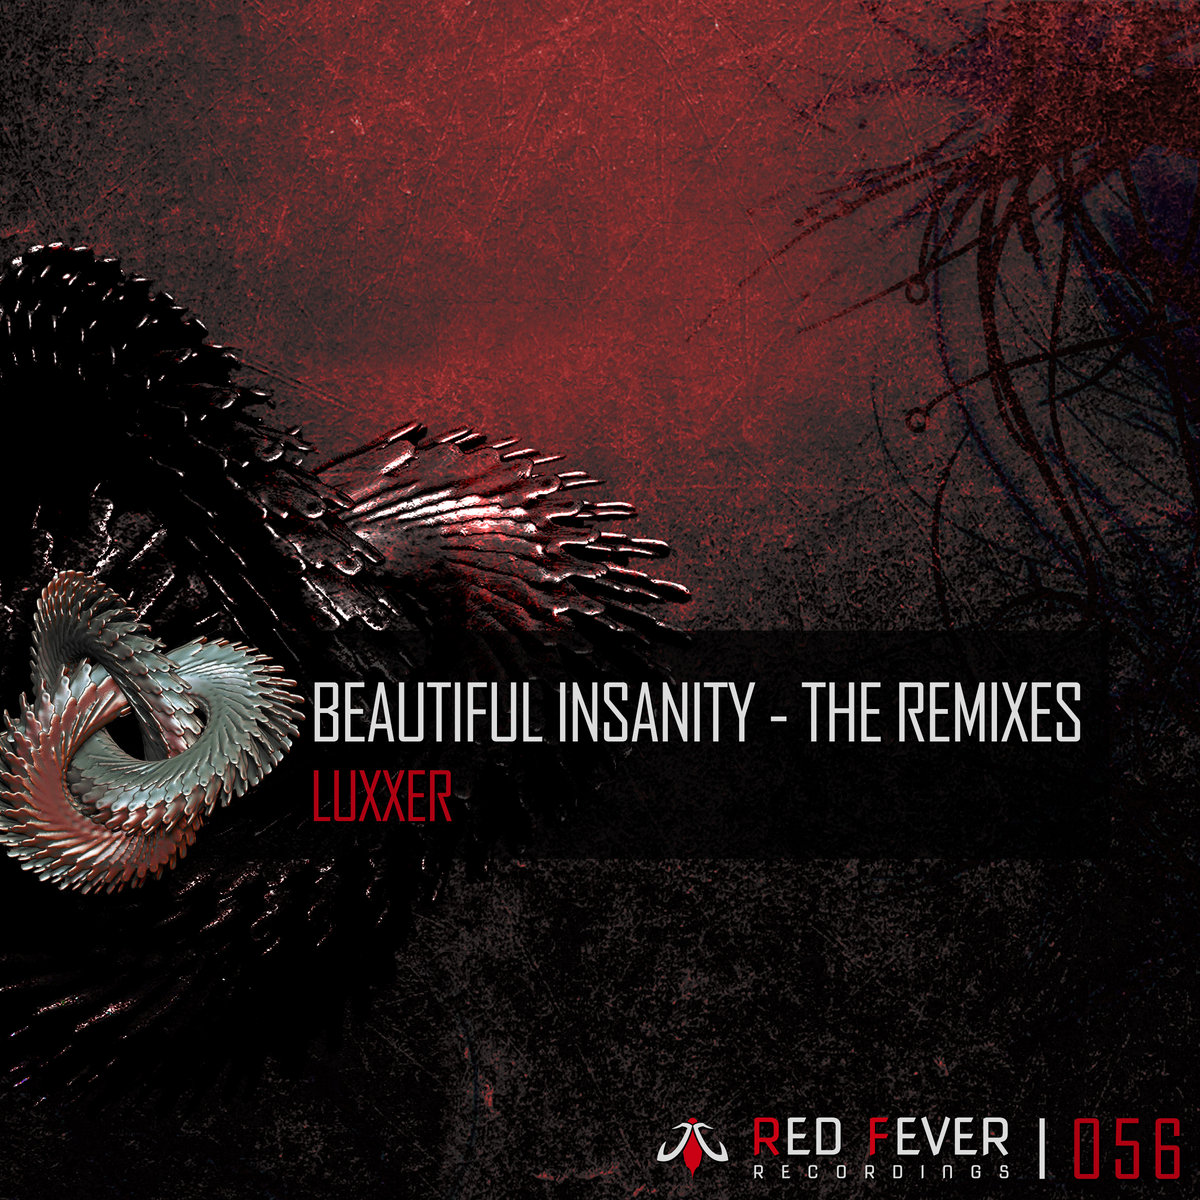 Luxxer - Beautiful Insanity (Rheeza remix) @ 'Beautiful Insanity (The remixes)' album (carnage, cluster)